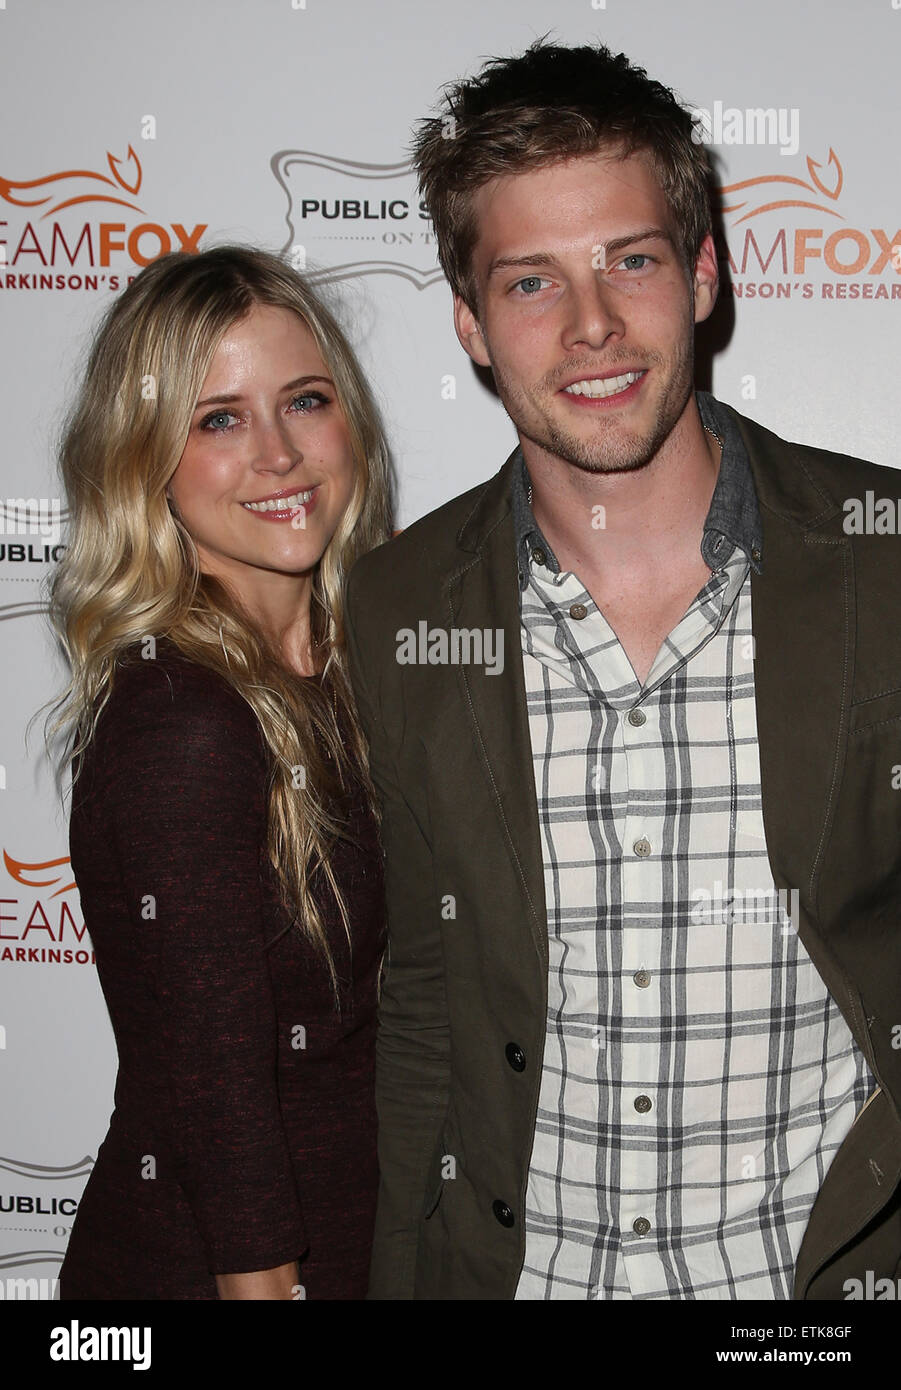 Hunter Parrish Dating Ideal raising the bar to end parkinson's featuring: hunter parrish stock